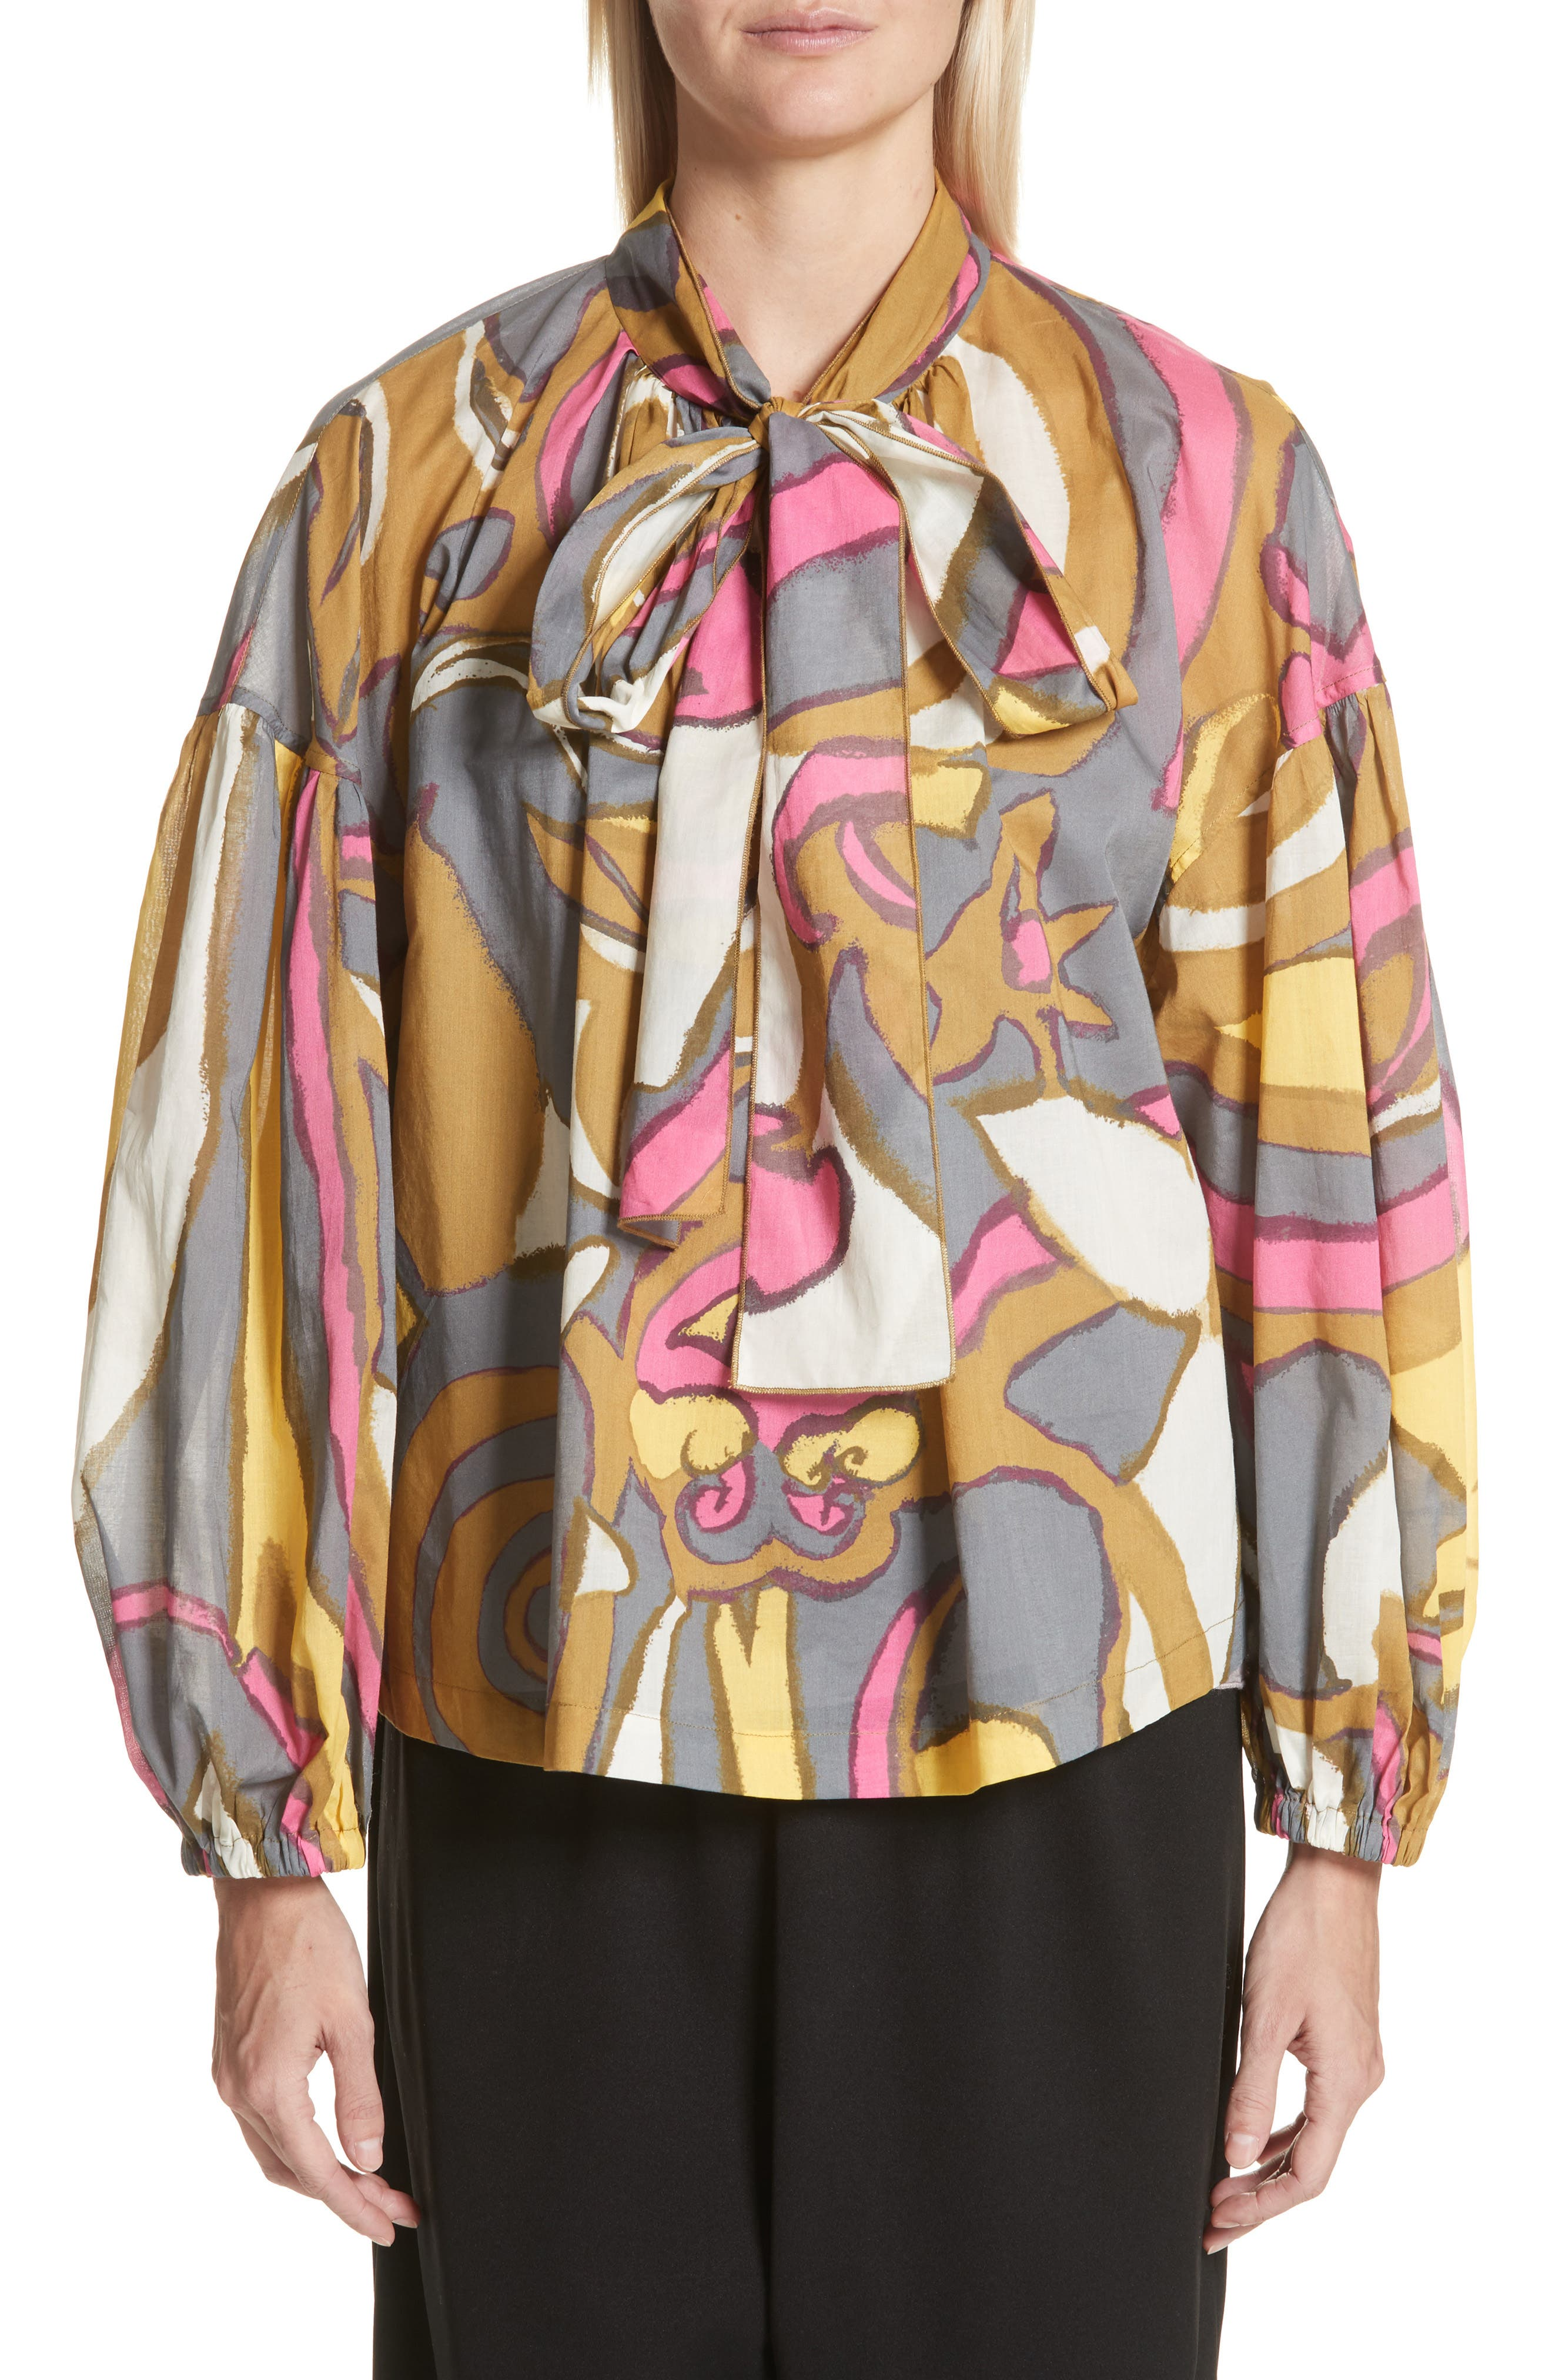 Alternate Image 1 Selected - MARC JACOBS Tie Neck Retro Print Blouse